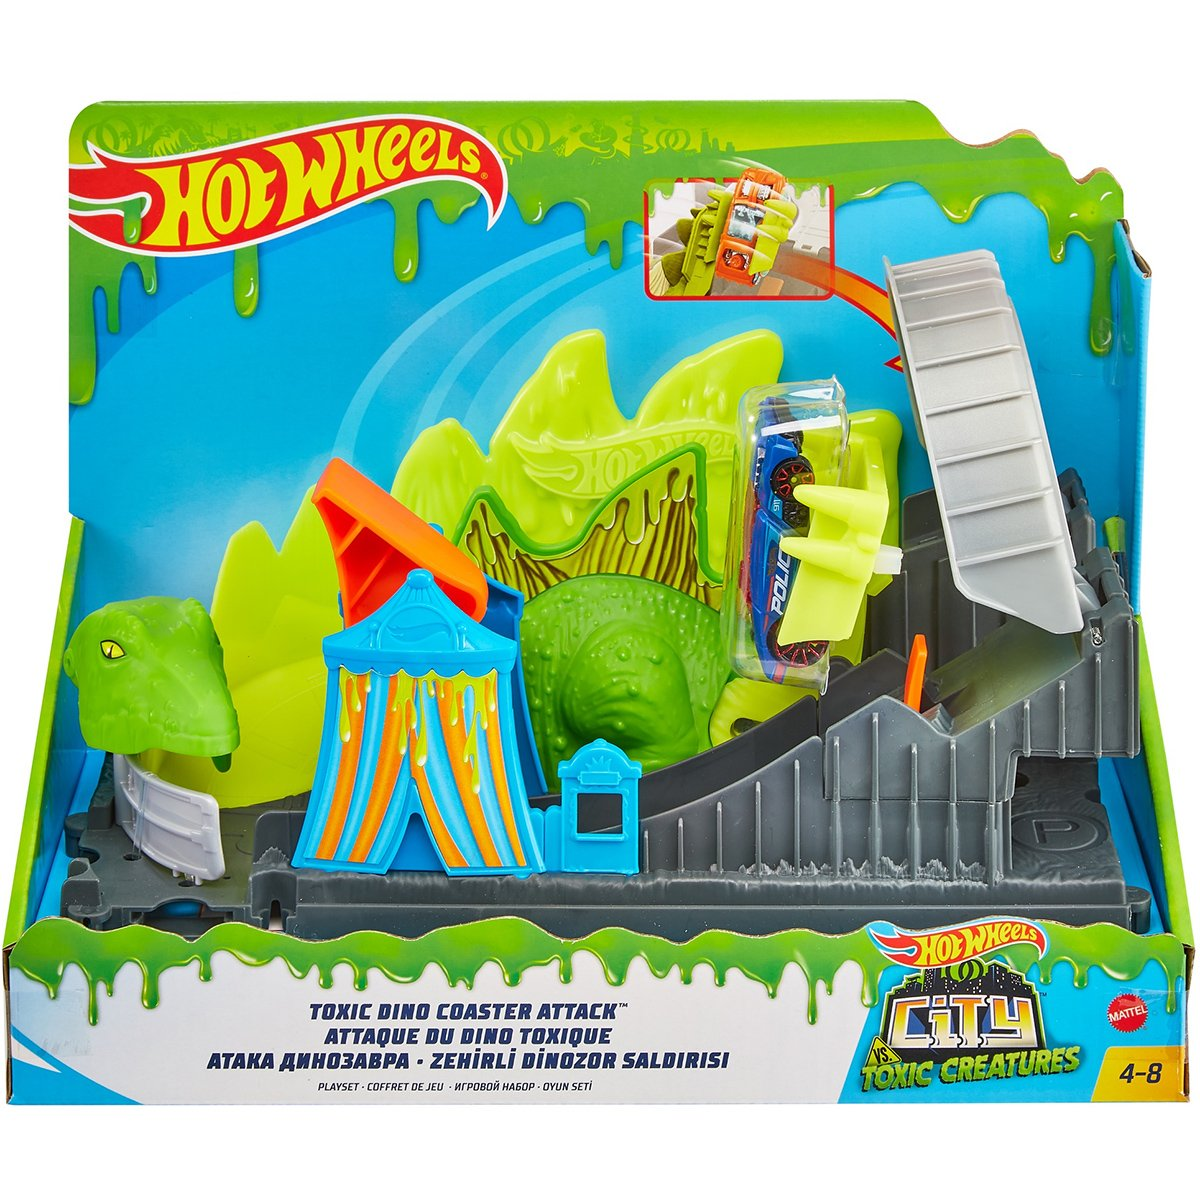 Set de joaca Circuit cu obstacole Hot Wheels City, Toxic Dino Coaster Attack (GTT68)